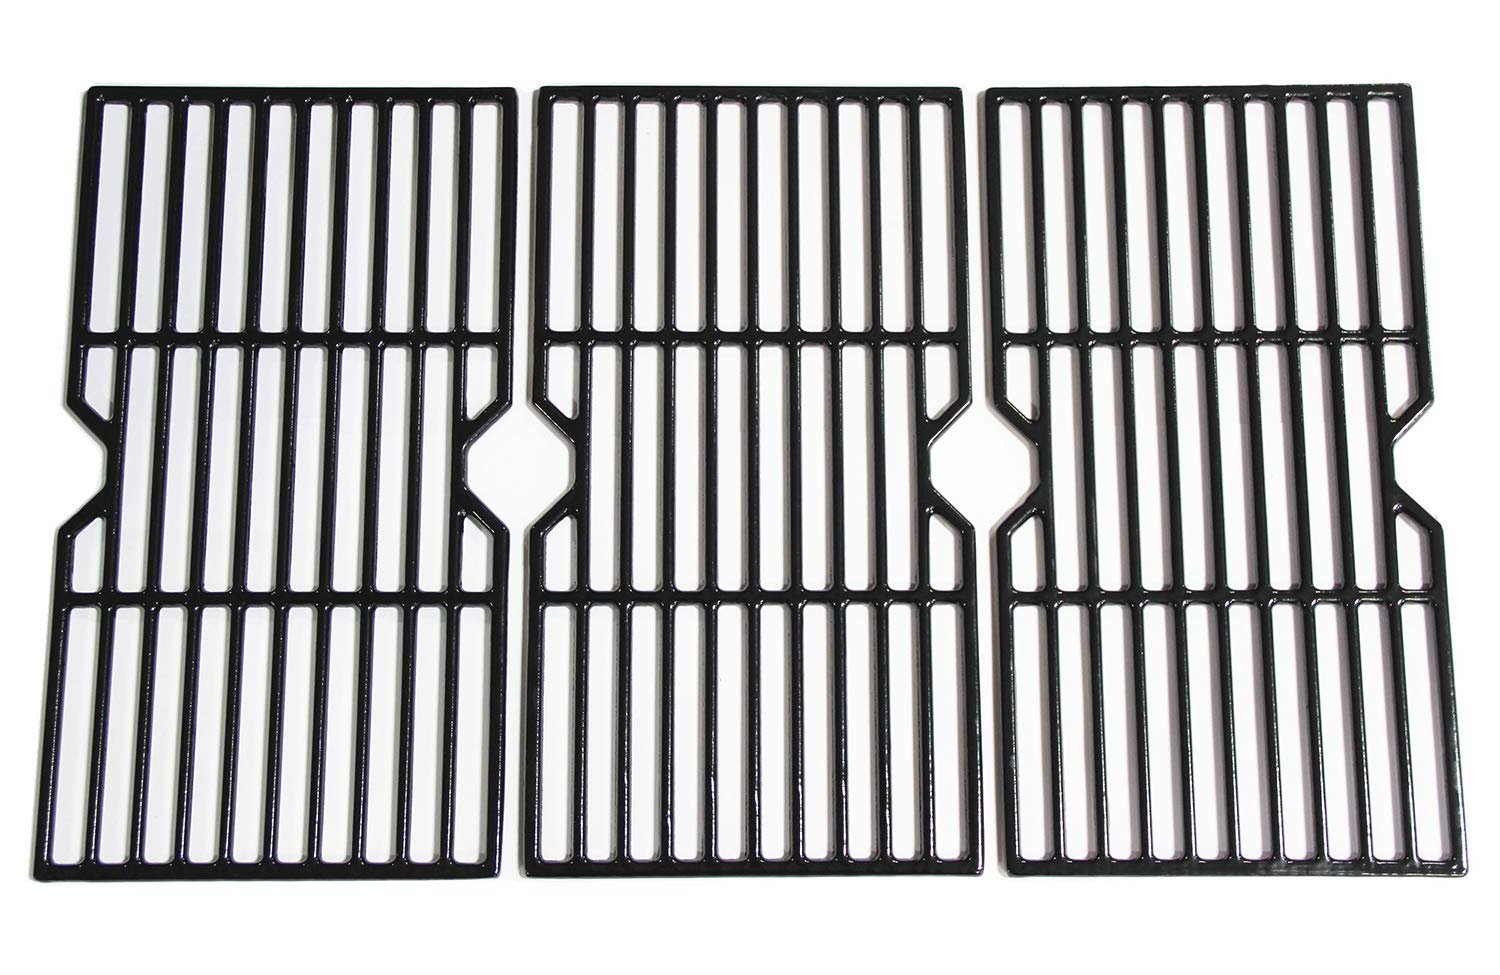 Hongso 16 7/8'' Cast Iron Grill Grates Replacement for Gas Grill Charbroil 463436213, 463436214, 463436215, 463420508, 463420509, 463440109, 463441312, 463441514, Thermos 461442114, PCH763